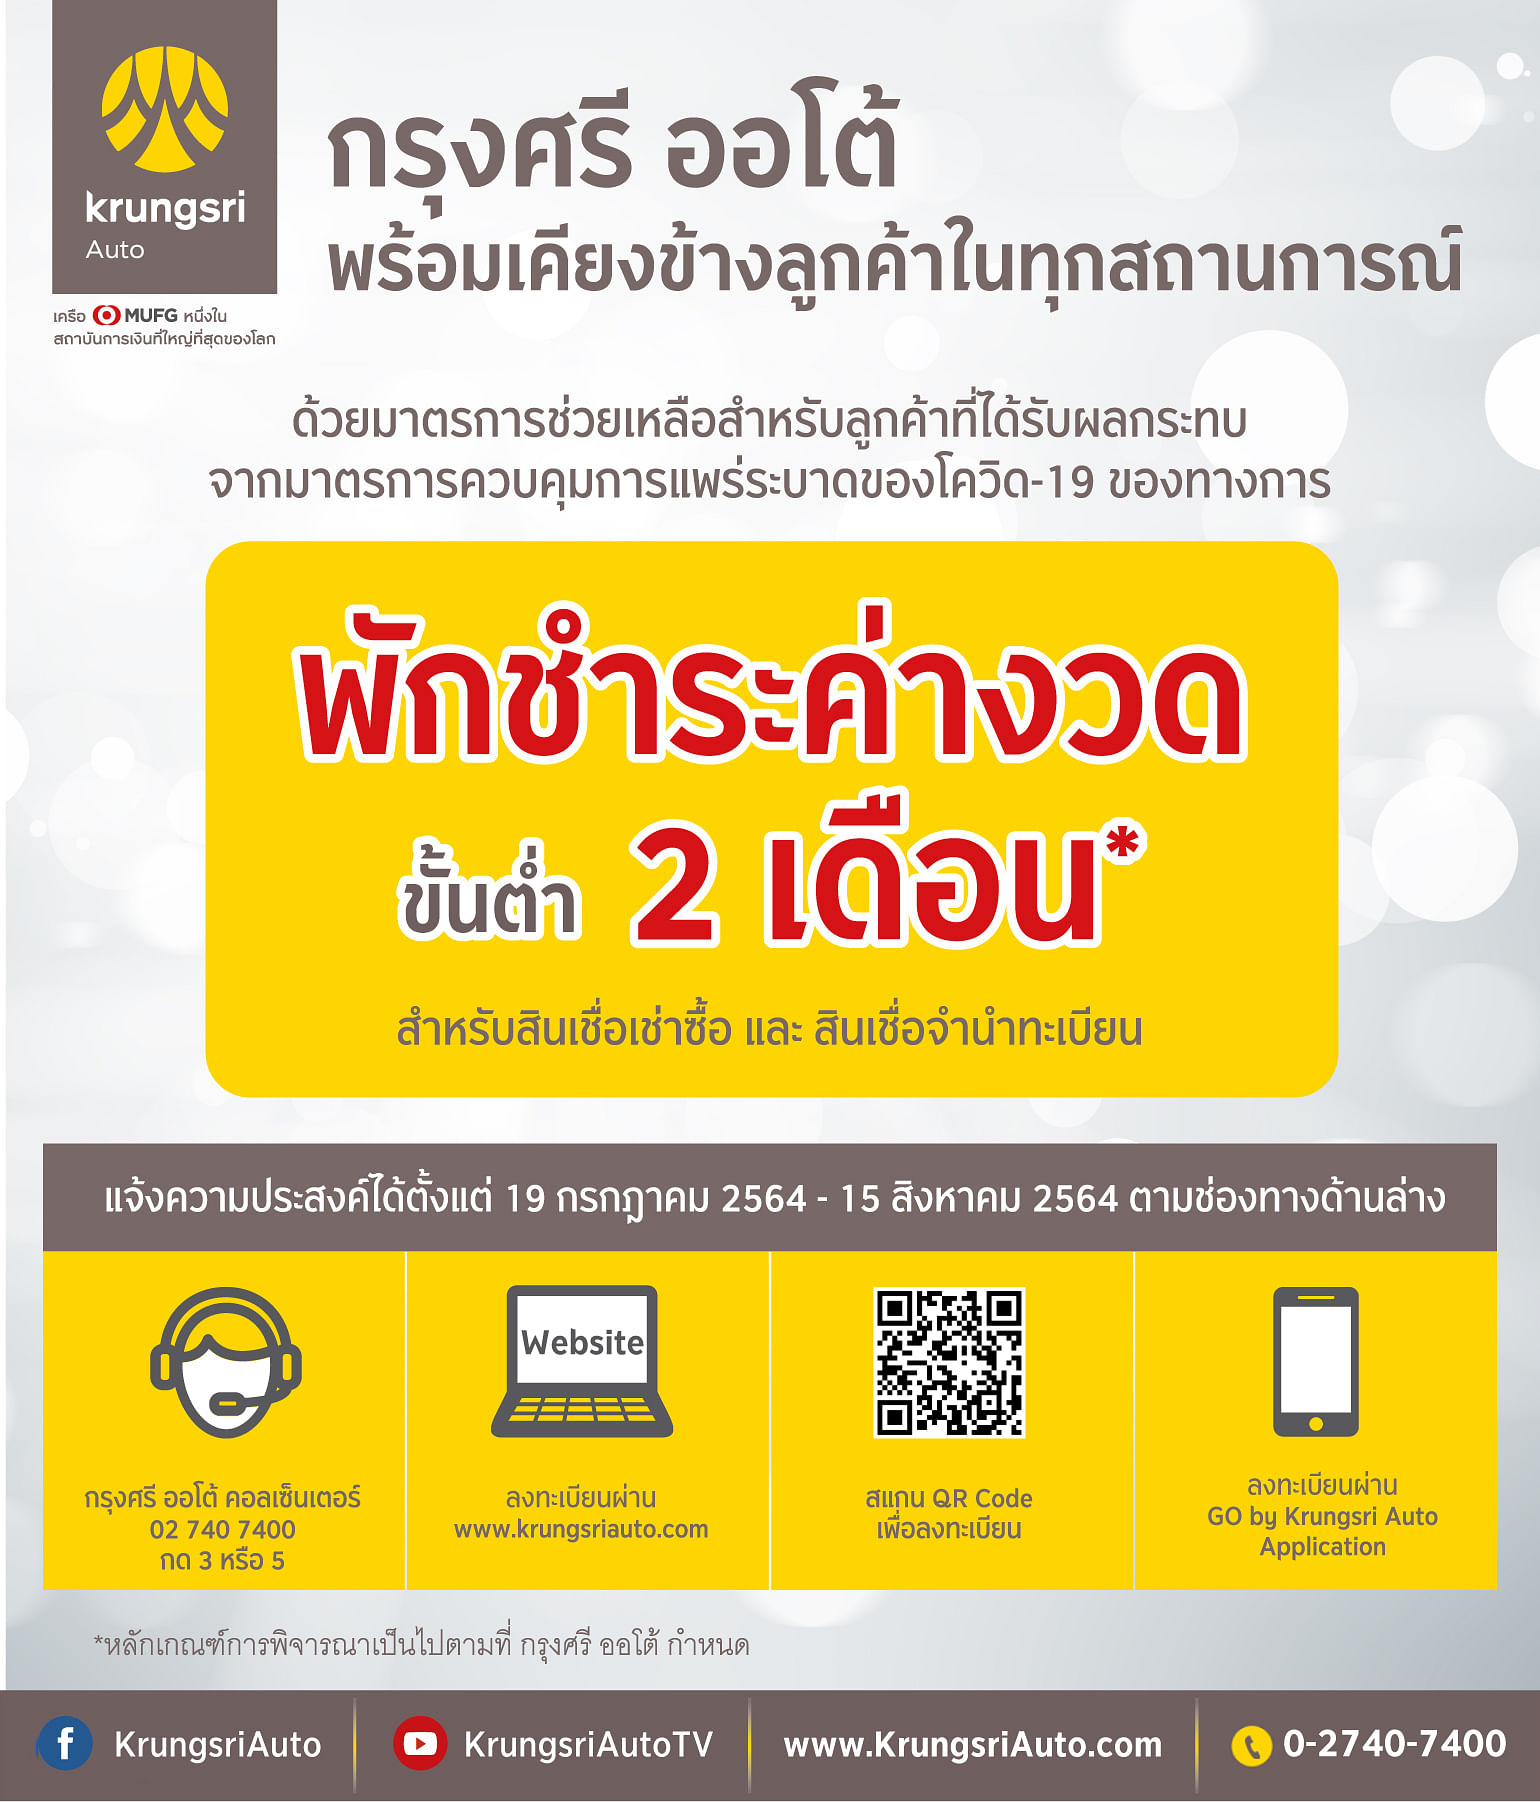 https://gumlet.assettype.com/ejan%2F2021-07%2Fb7781d59-841f-4339-afe2-3416d8dbee62%2FInfographic_Krungsri_Auto_COVID_19_additional_relief_measures.jpg?format=auto